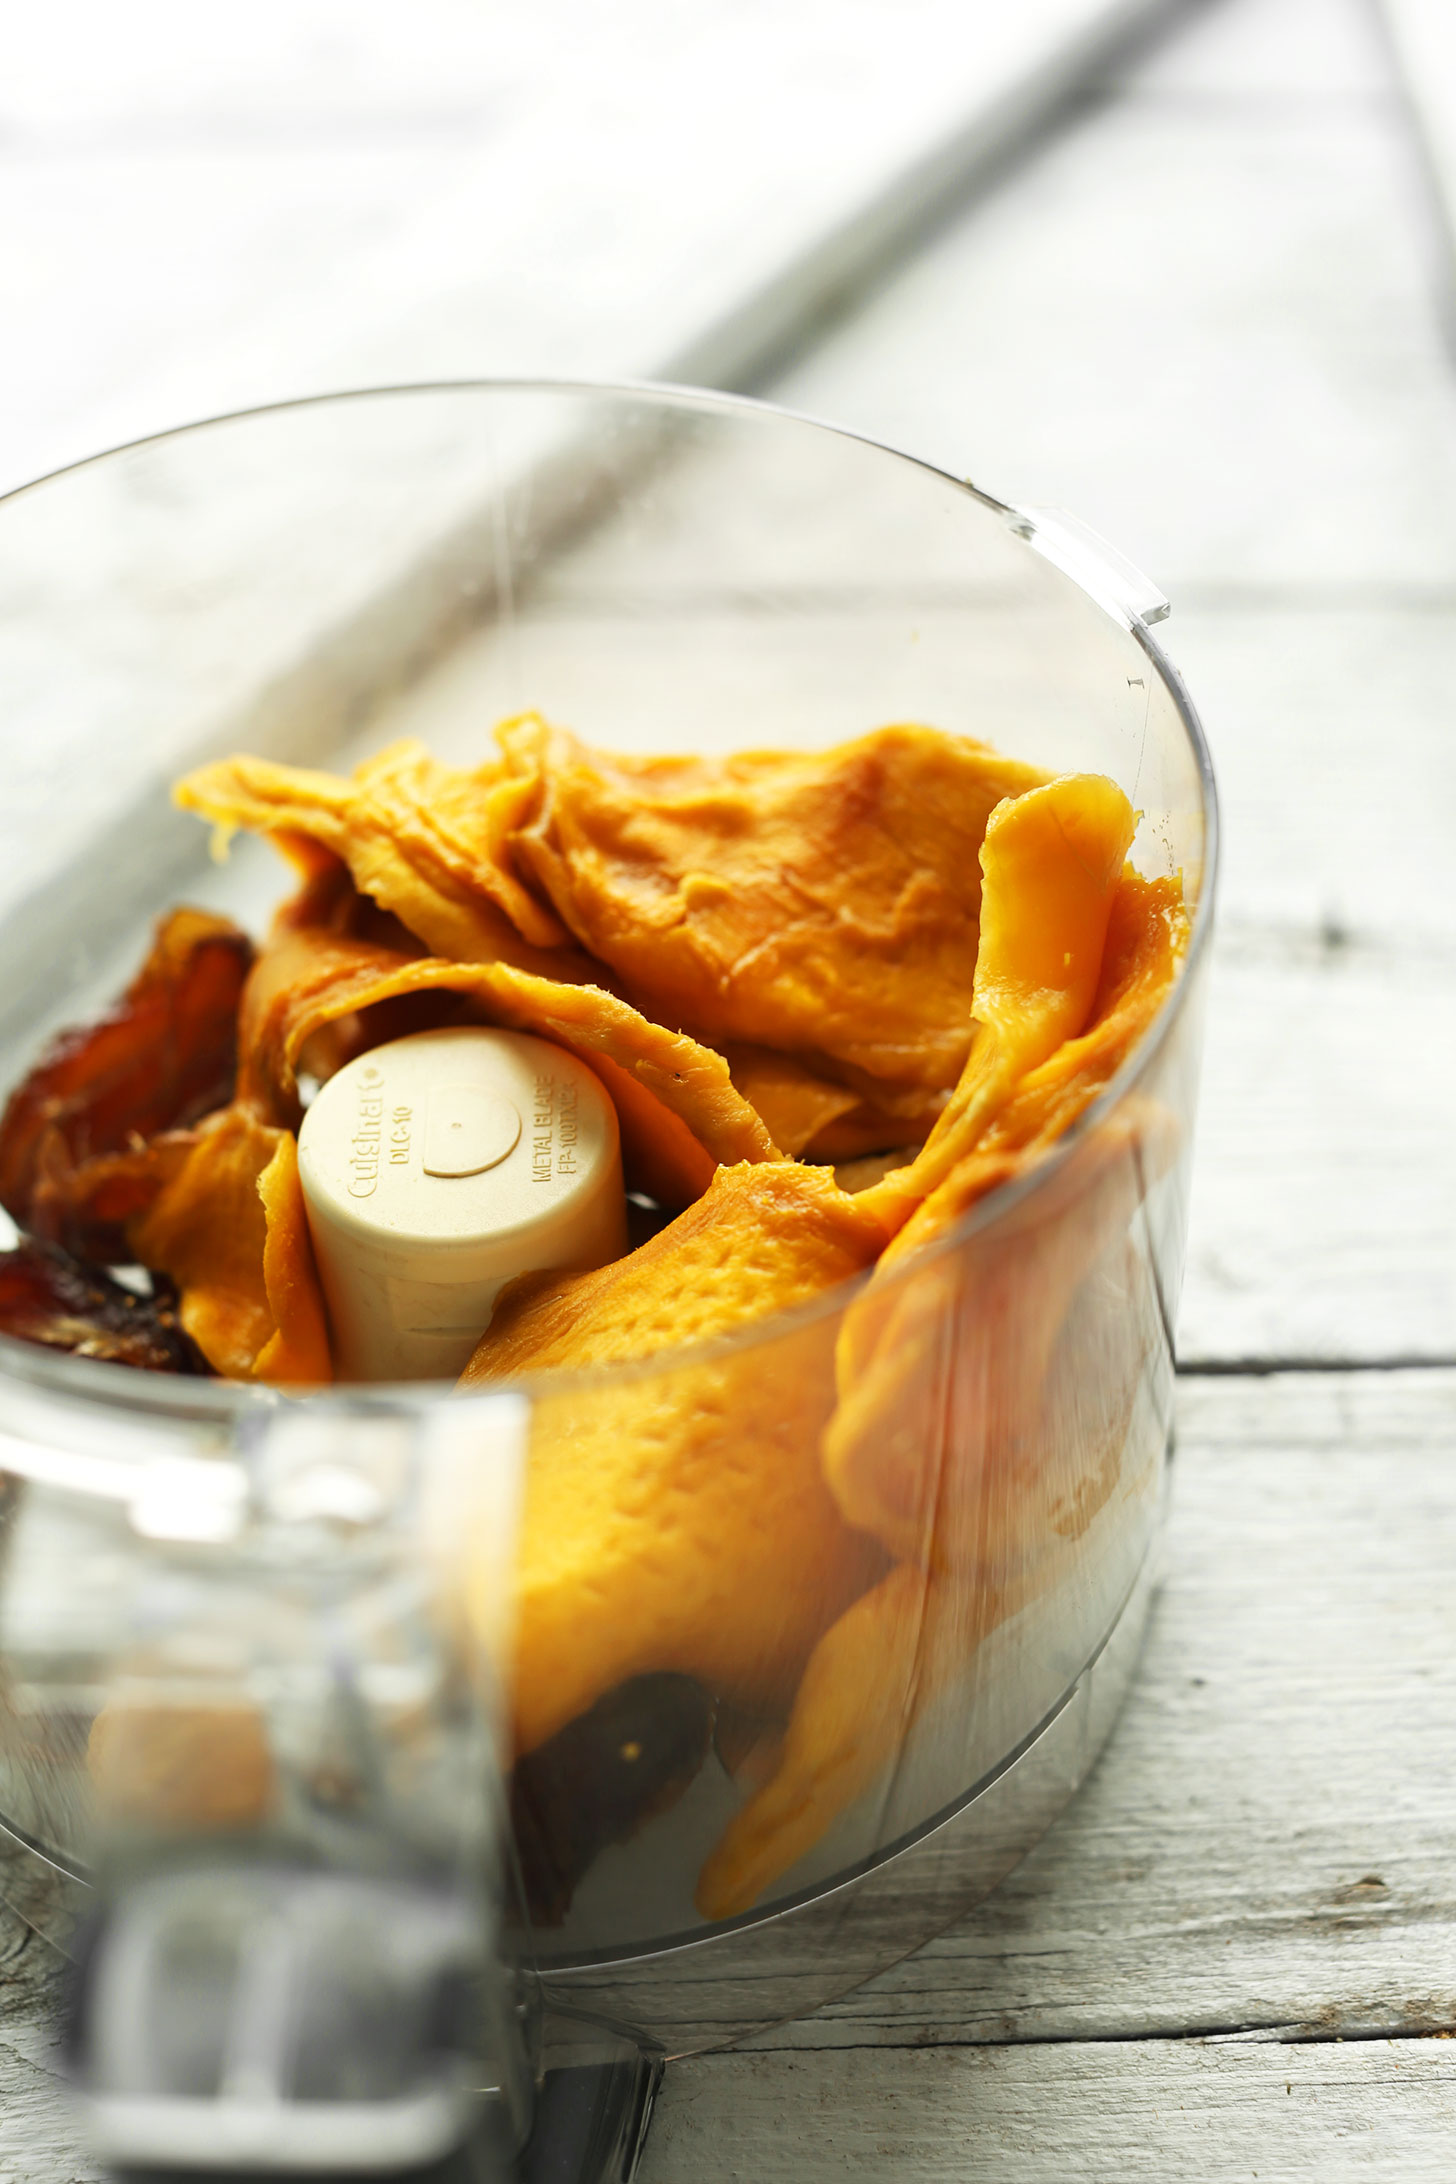 Food processor with ingredients for making fiber- and protein-rich Dried Mango Energy Bites